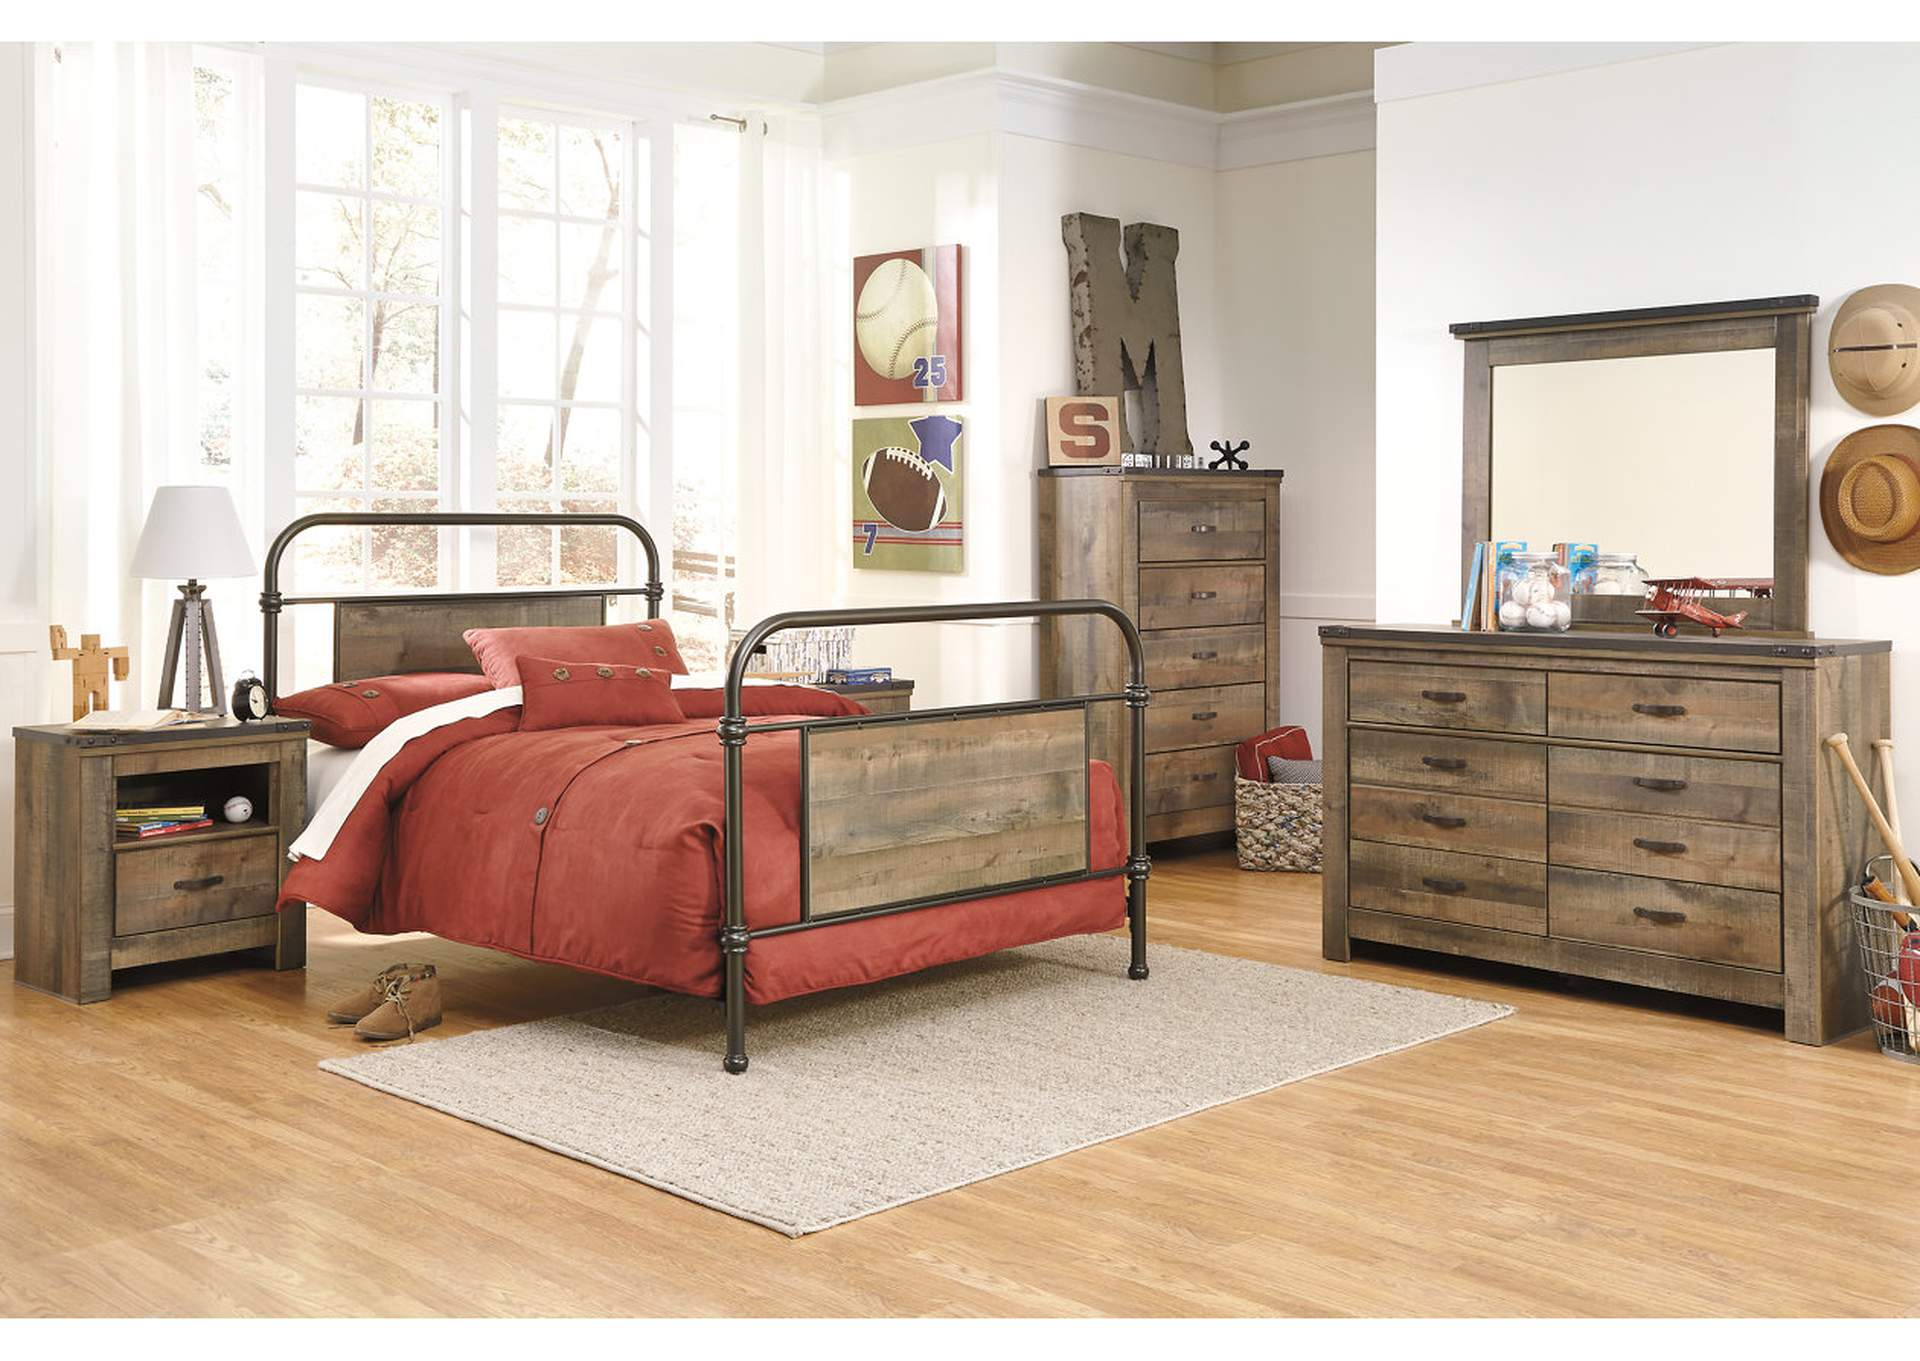 Trinell Brown Twin Metal Bed w/Dresser, Mirror & Nightstand,Signature Design By Ashley